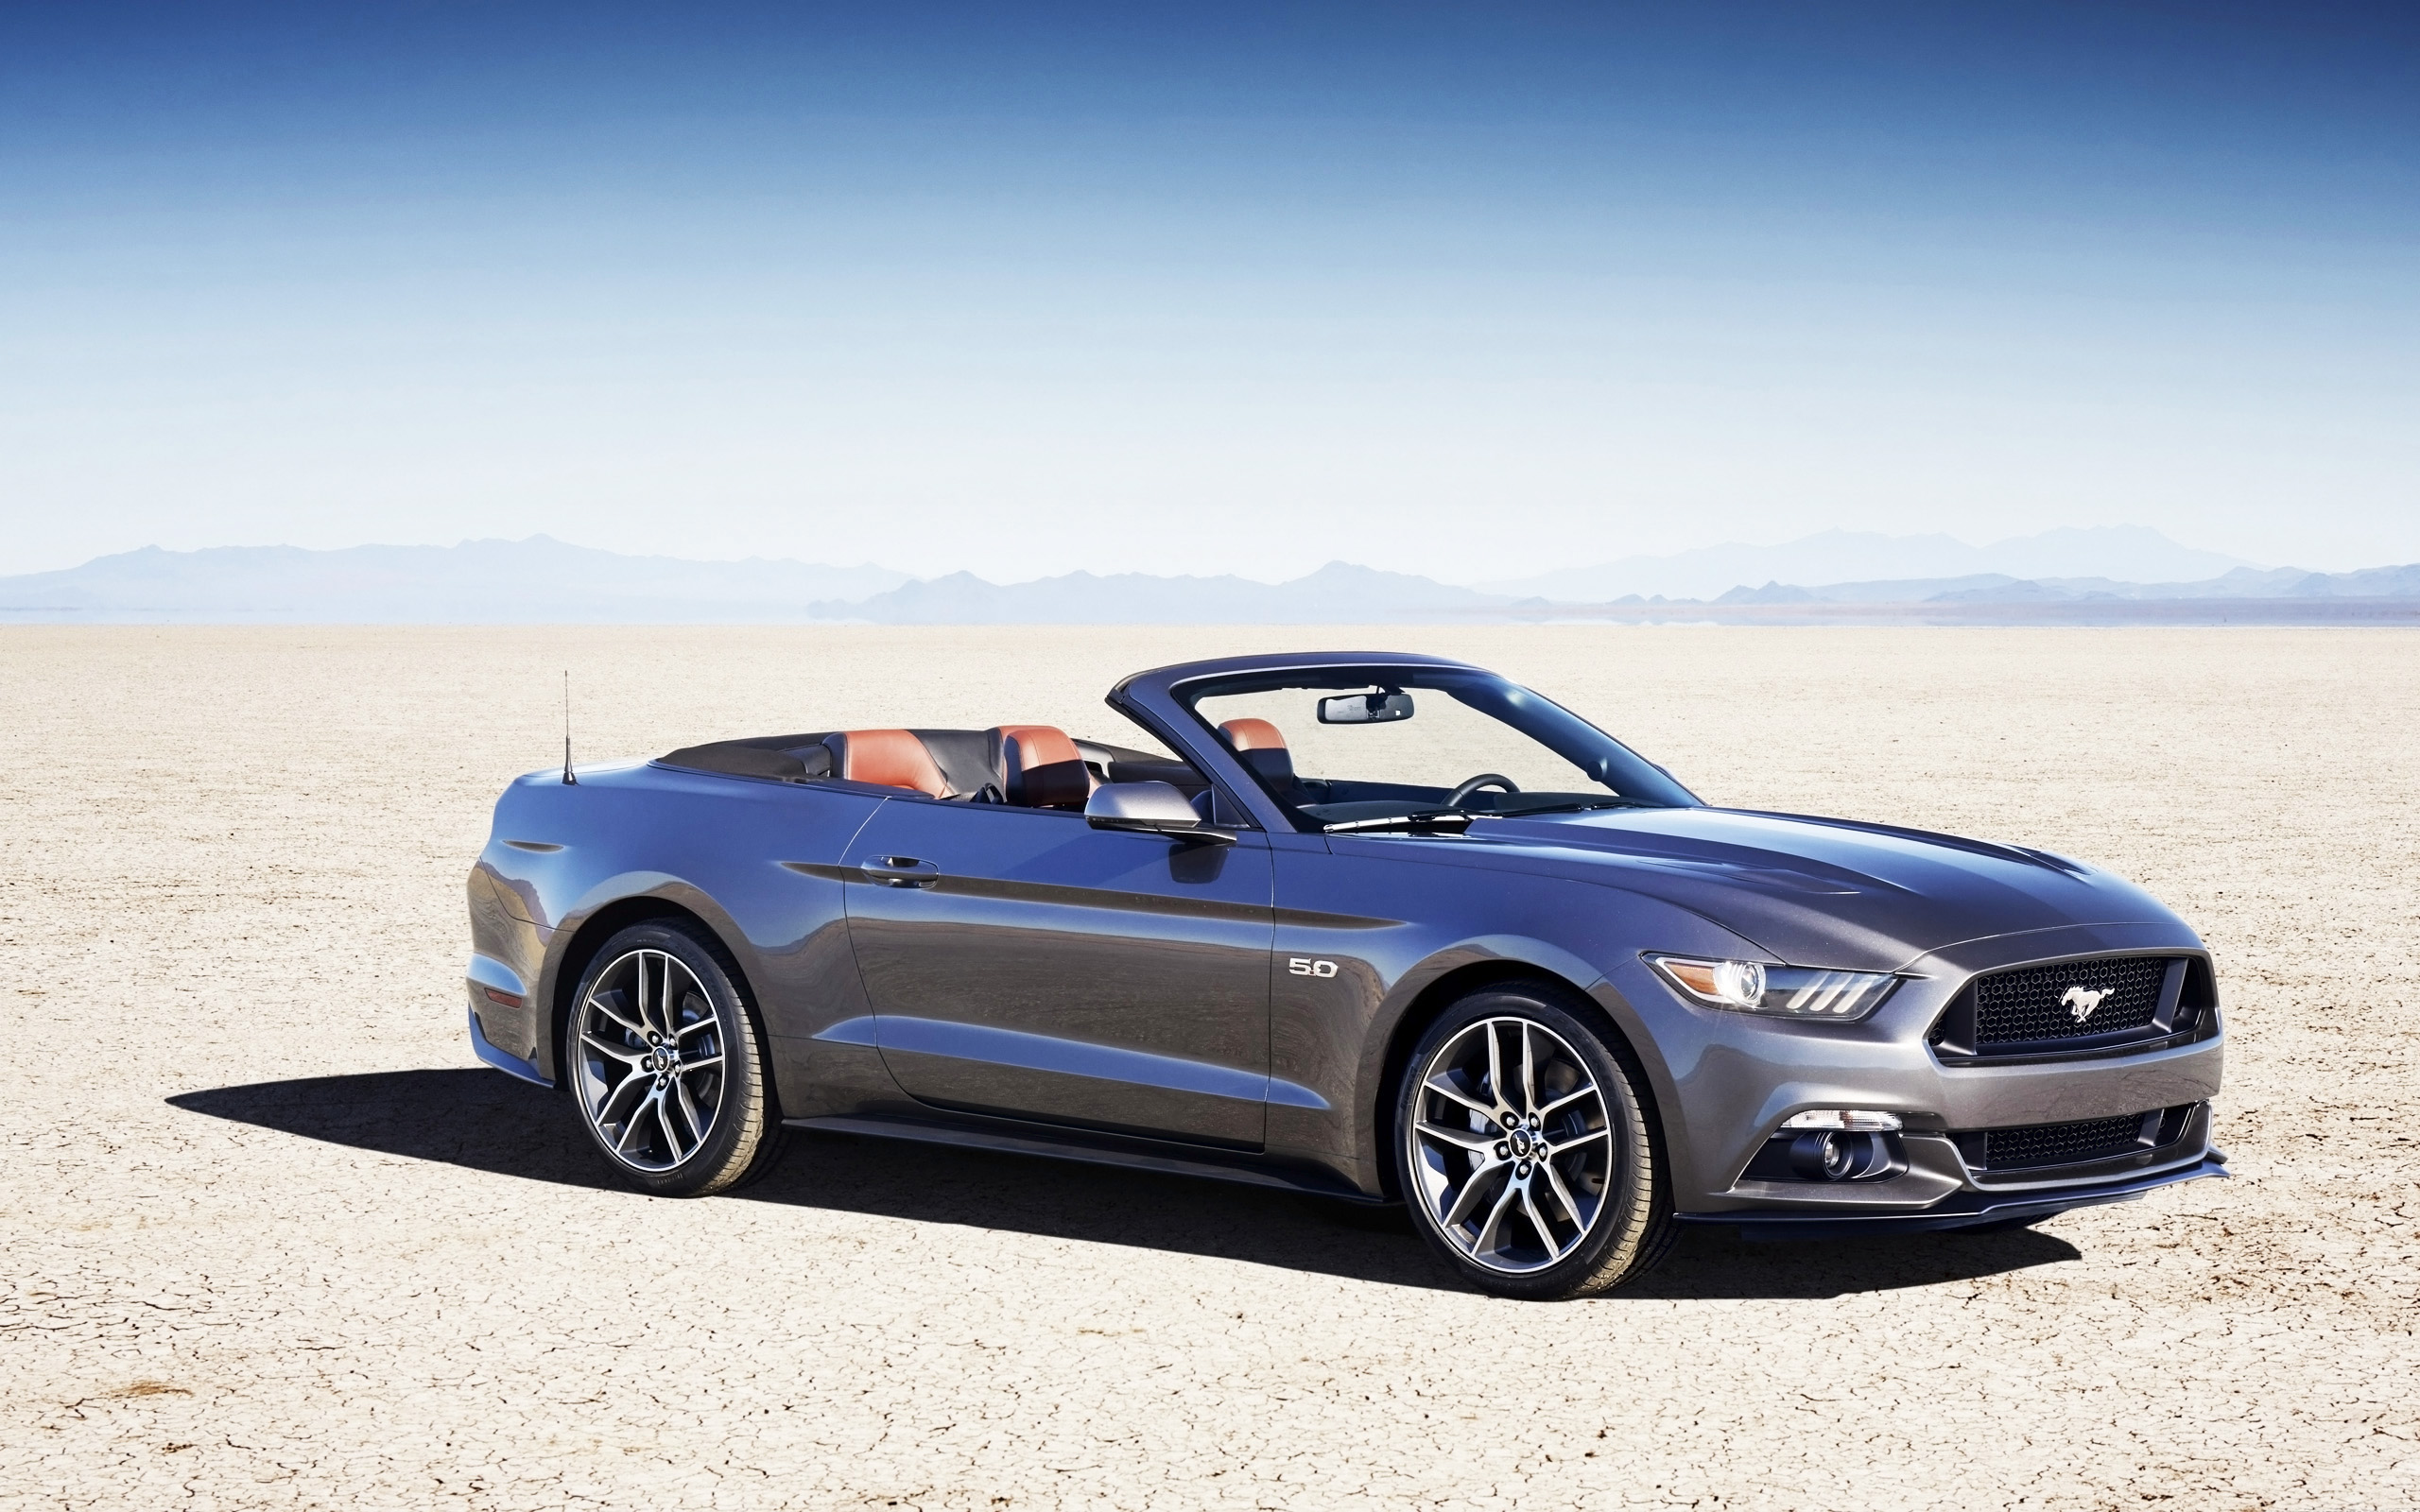 2015 Ford Mustang Convertible Wallpaper Hd Car Wallpapers Id 4511 1999 Ranger Transfer Case Wiring Diagram